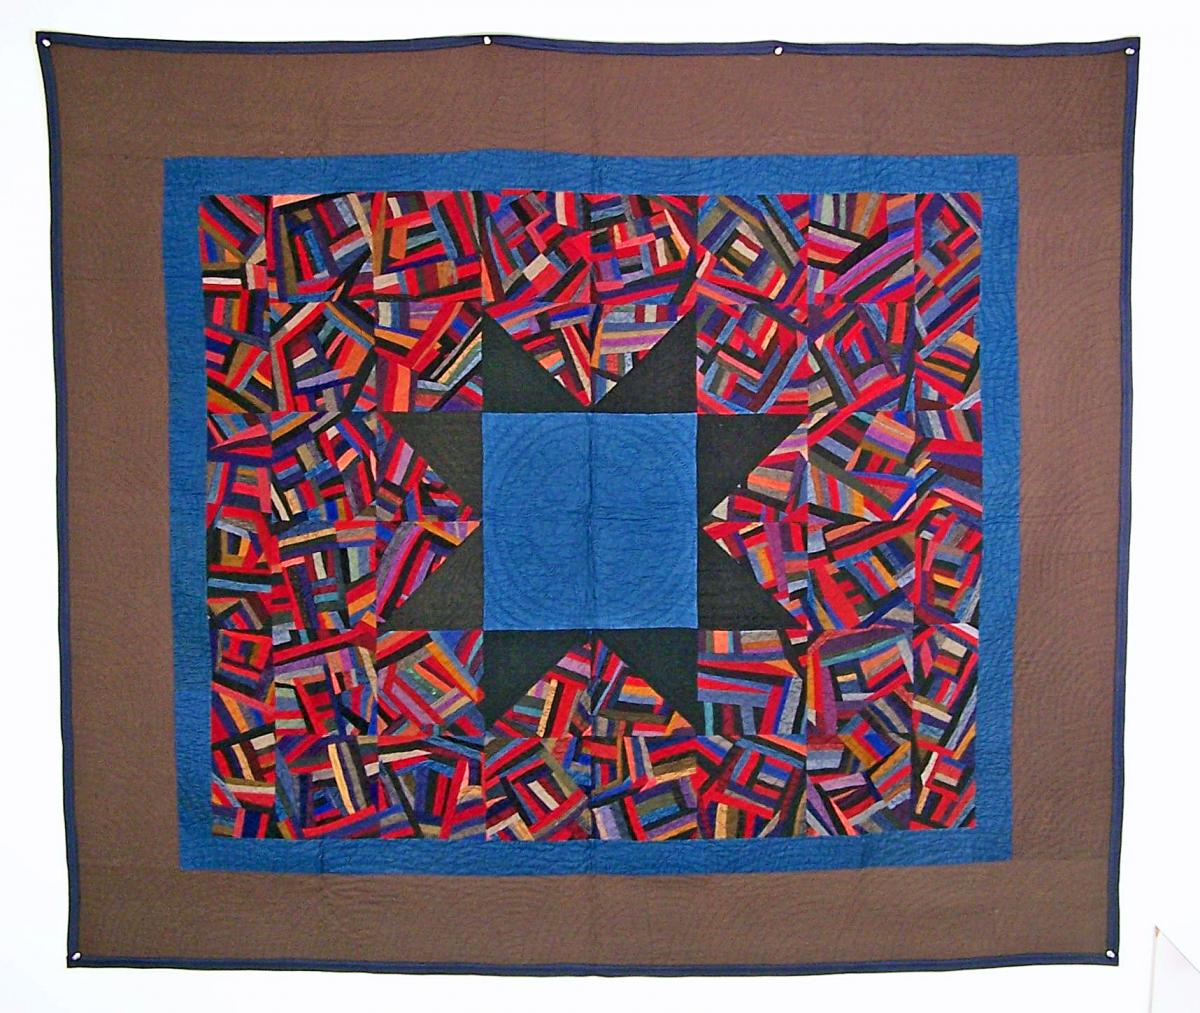 Crazy Star Quilt in brown, red, and blue